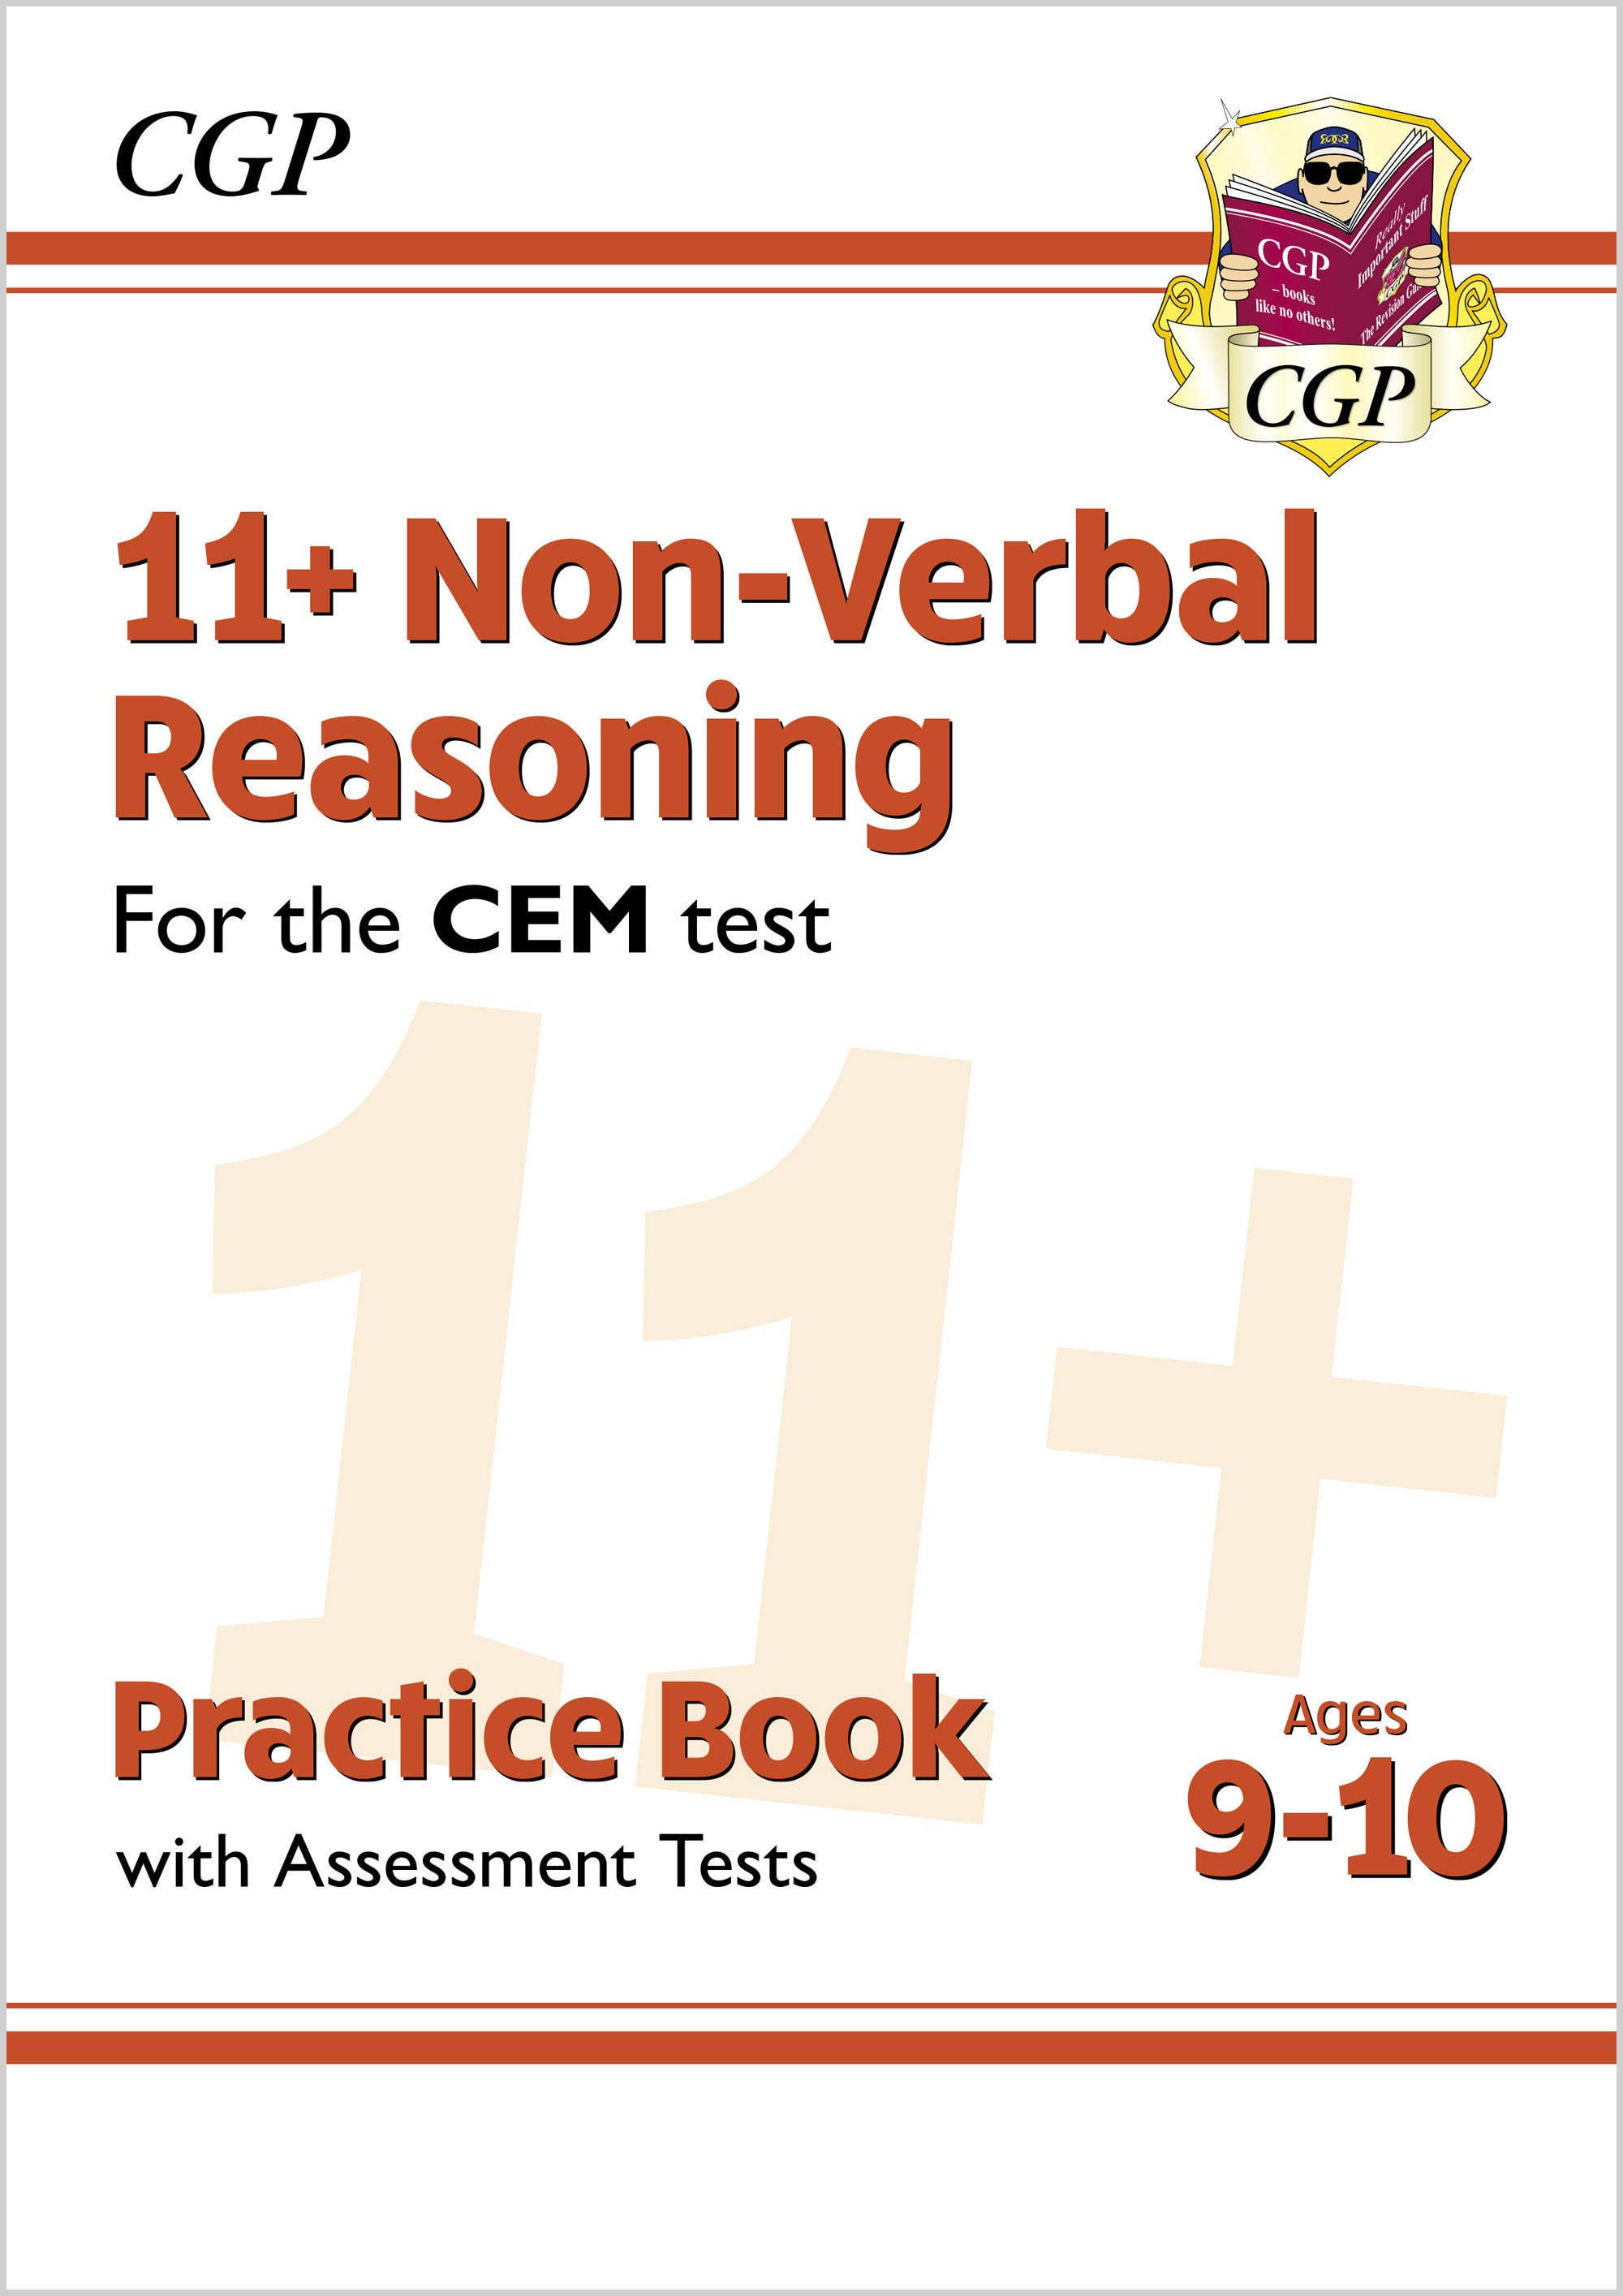 N5QDE2DK - New 11+ CEM Non-Verbal Reasoning Practice Book & Assessment Tests - Ages 9-10 (with Onlin